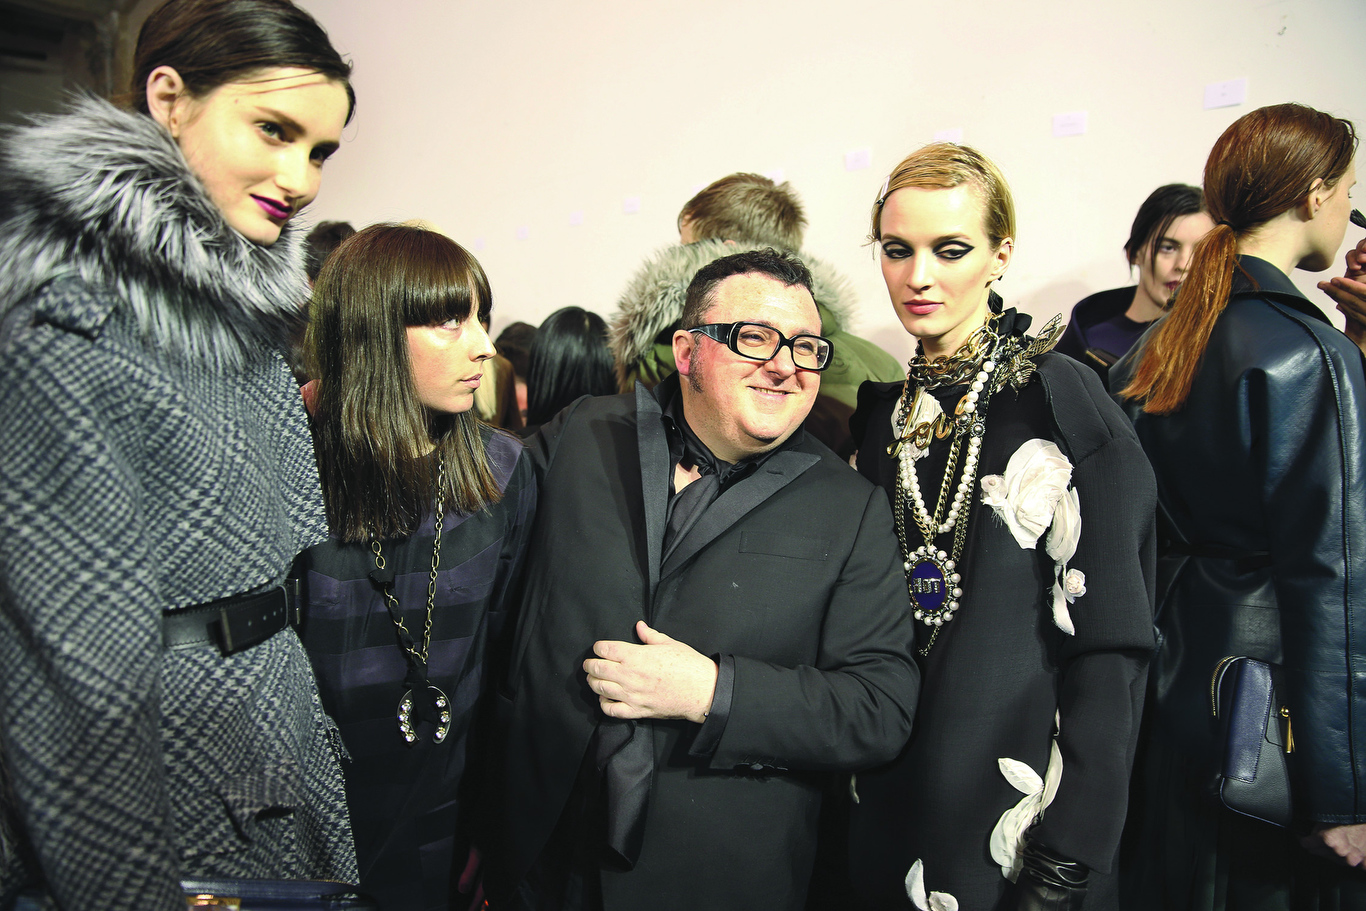 Alber Elbaz backstage at his Lanvin fall 2013 ready-to-wear show.